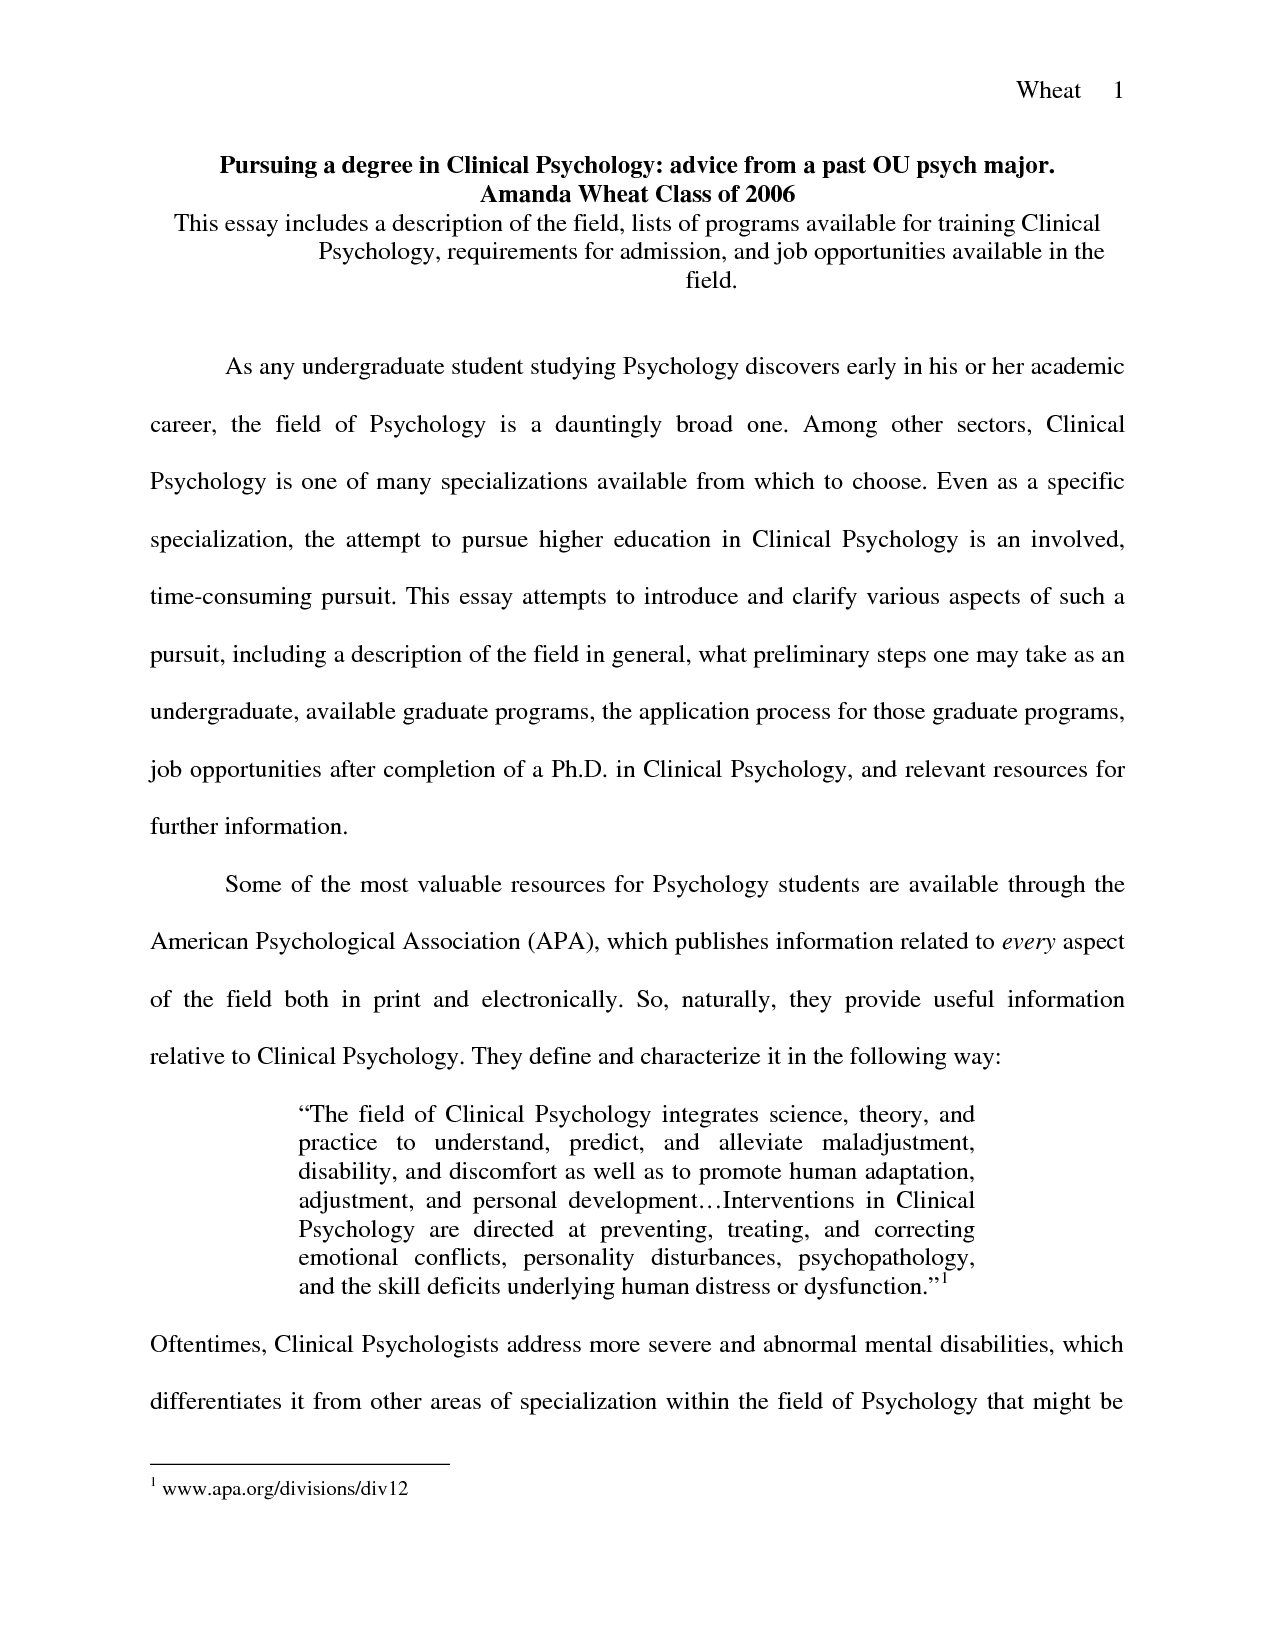 Clinical Psychology Masters Personal Statement